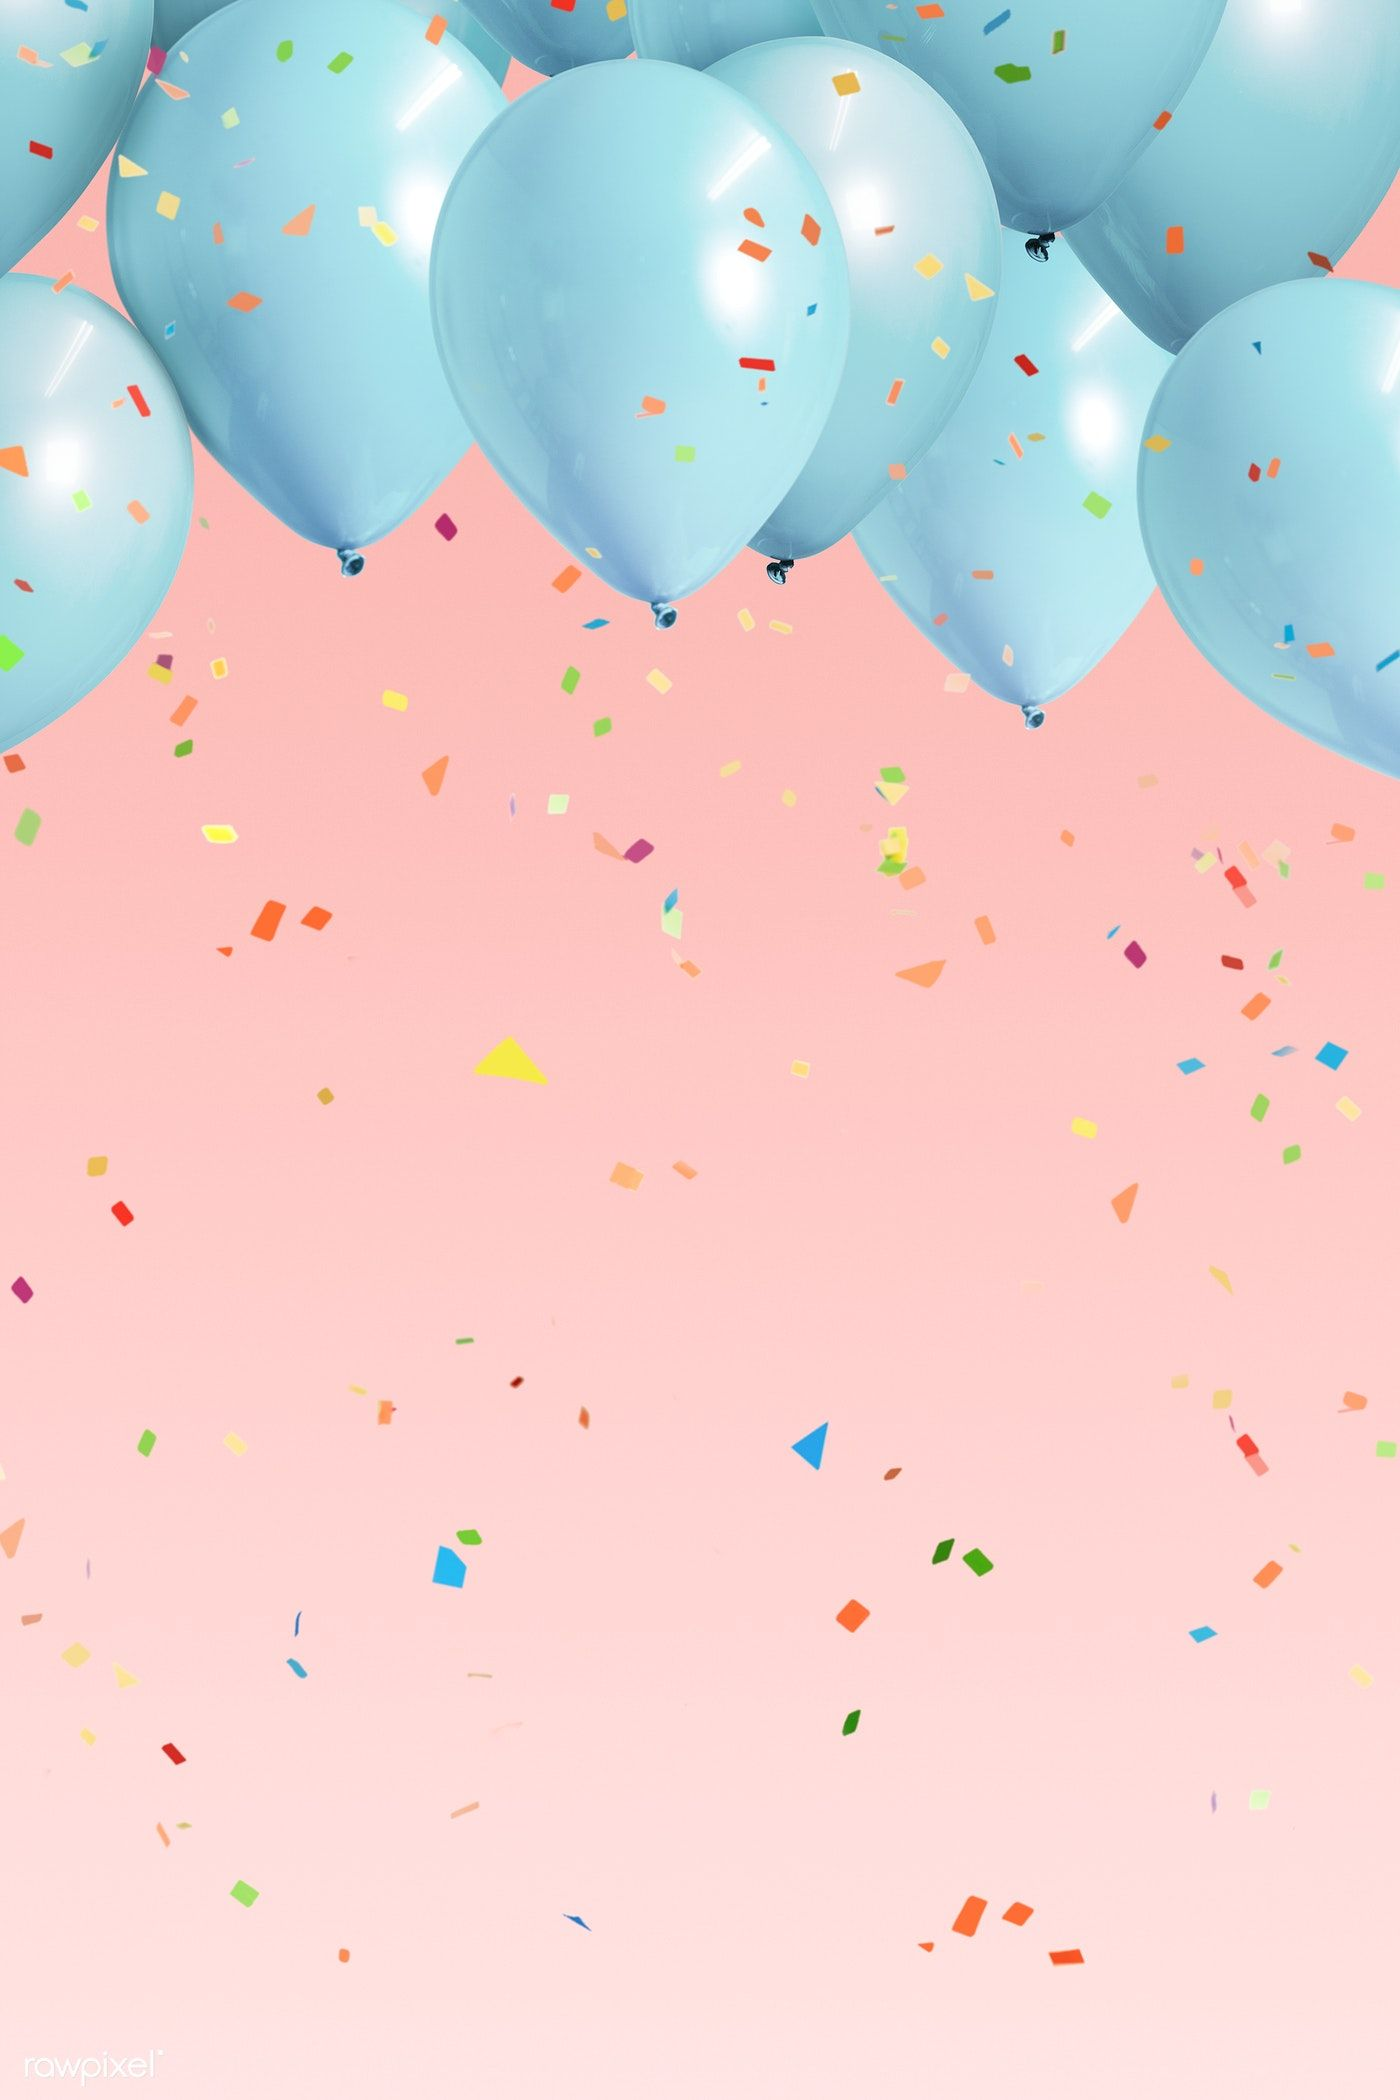 Download Premium Illustration Of Pastel Blue Balloons On A Pink Background Cute Pink Background Pink Background Birthday Background Design